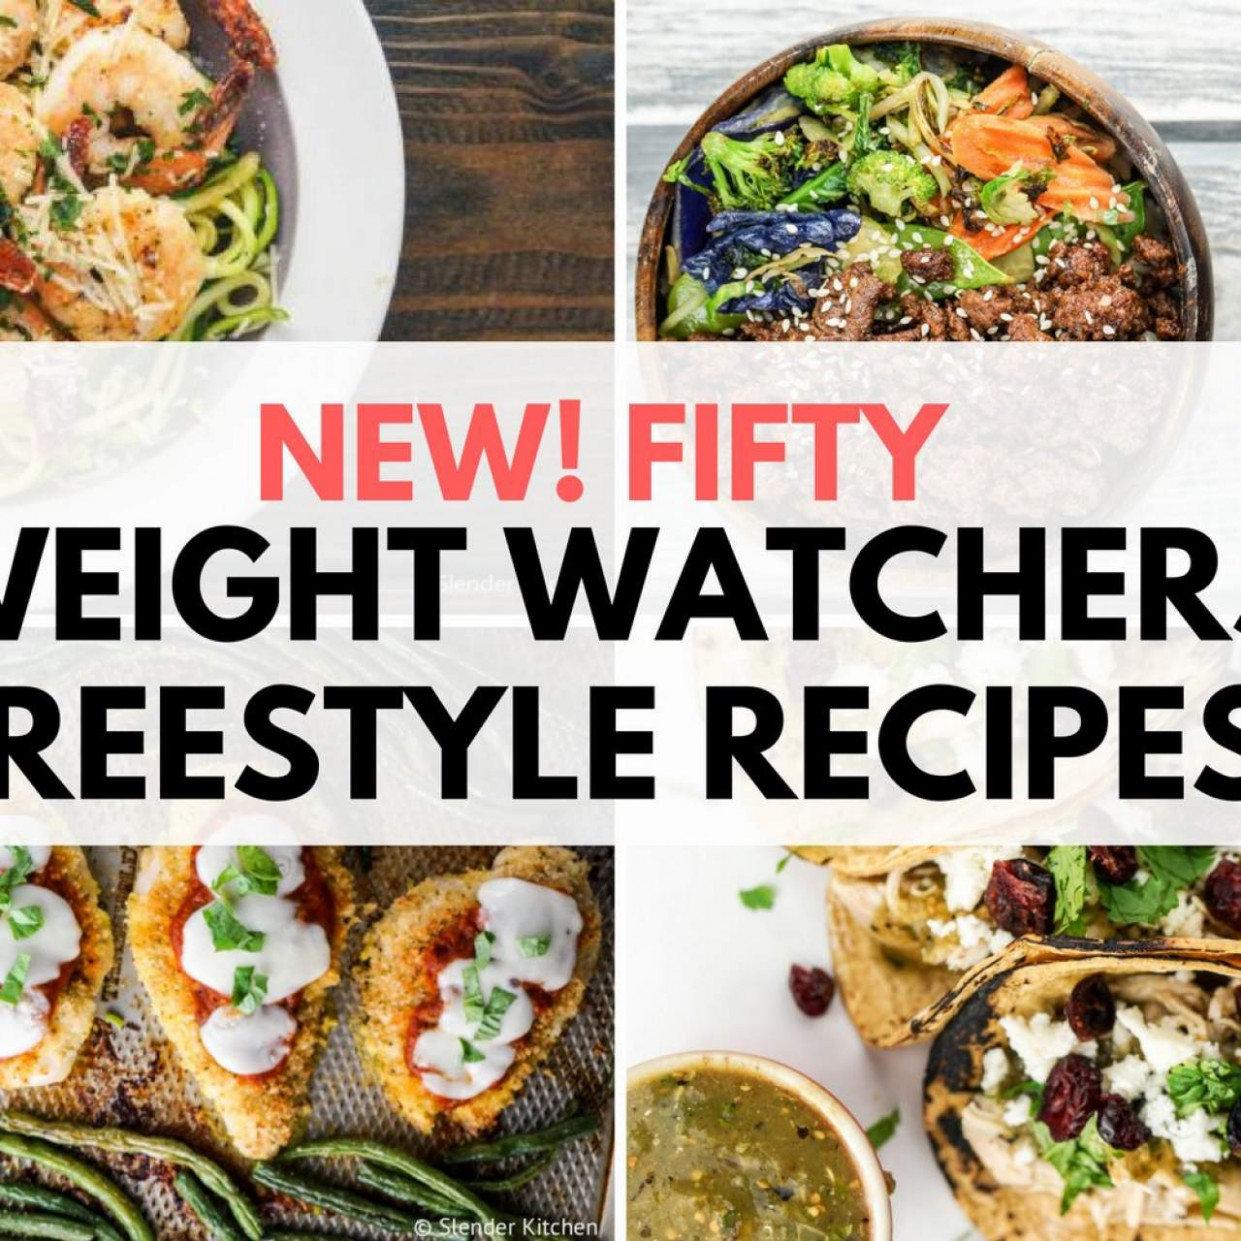 10 Weight Watchers Freestyle Recipes - Slender Kitchen - weight watchers recipes vegetarian